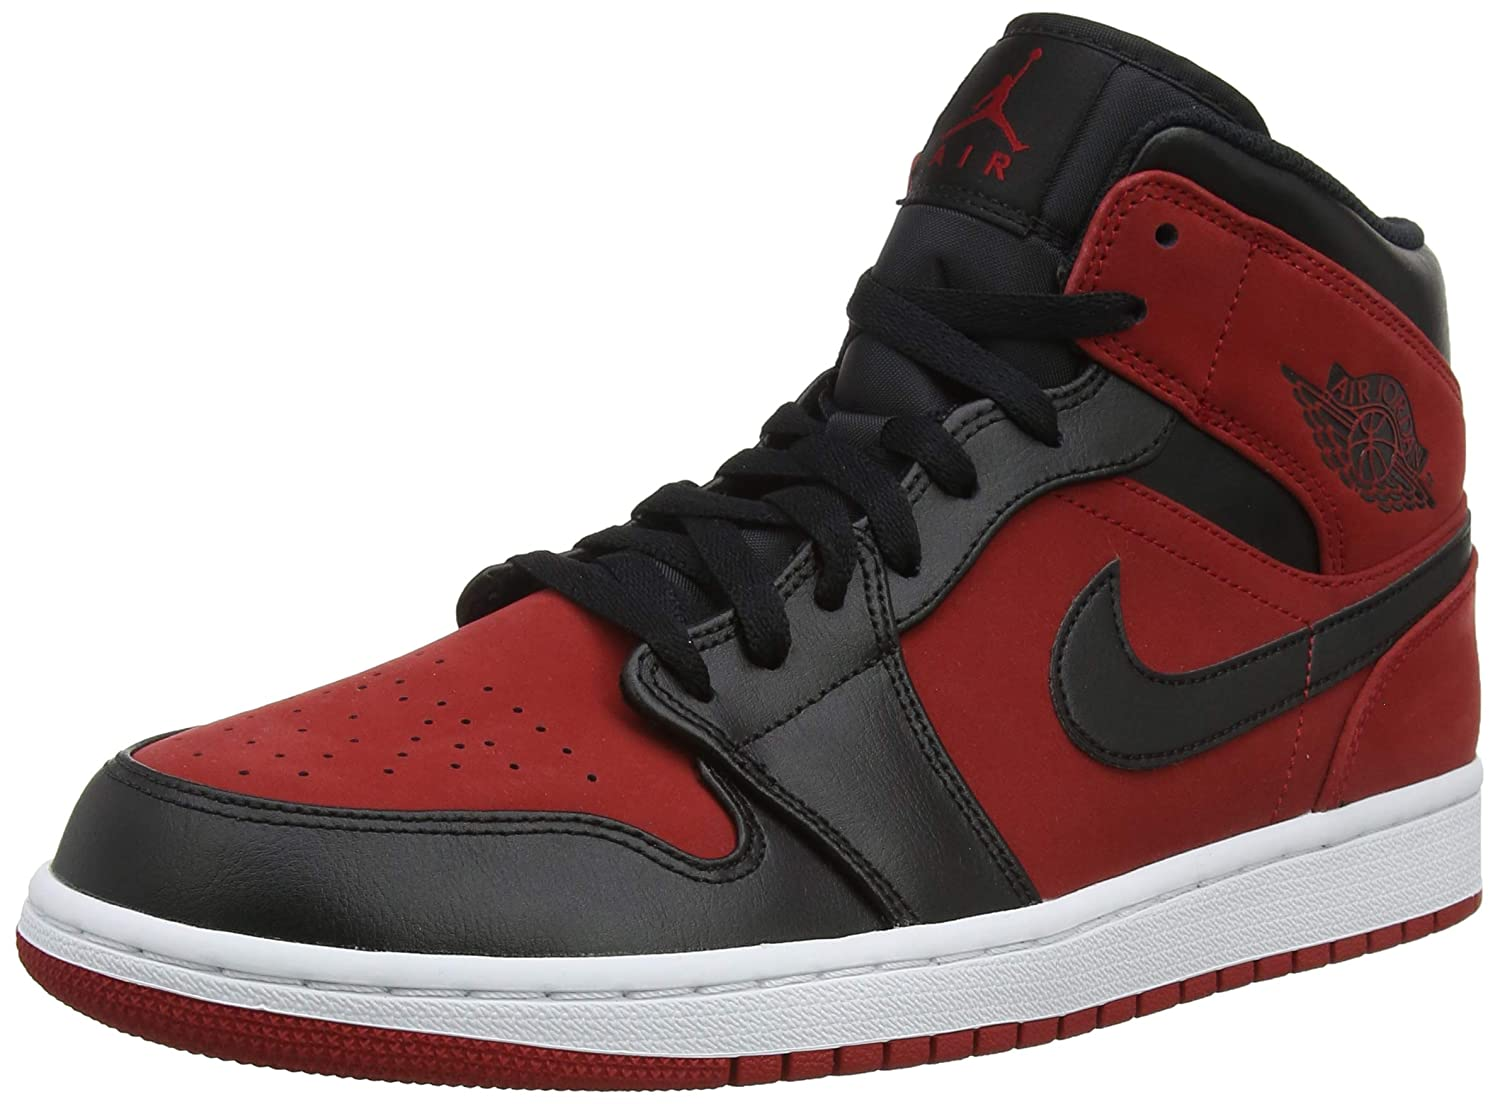 pretty nice 7eaf8 c9453 Amazon.com   NIKE Jordan Men s Air Retro 1 Basketball Shoe, Gym Red Black- White (610), 11.5   Fashion Sneakers